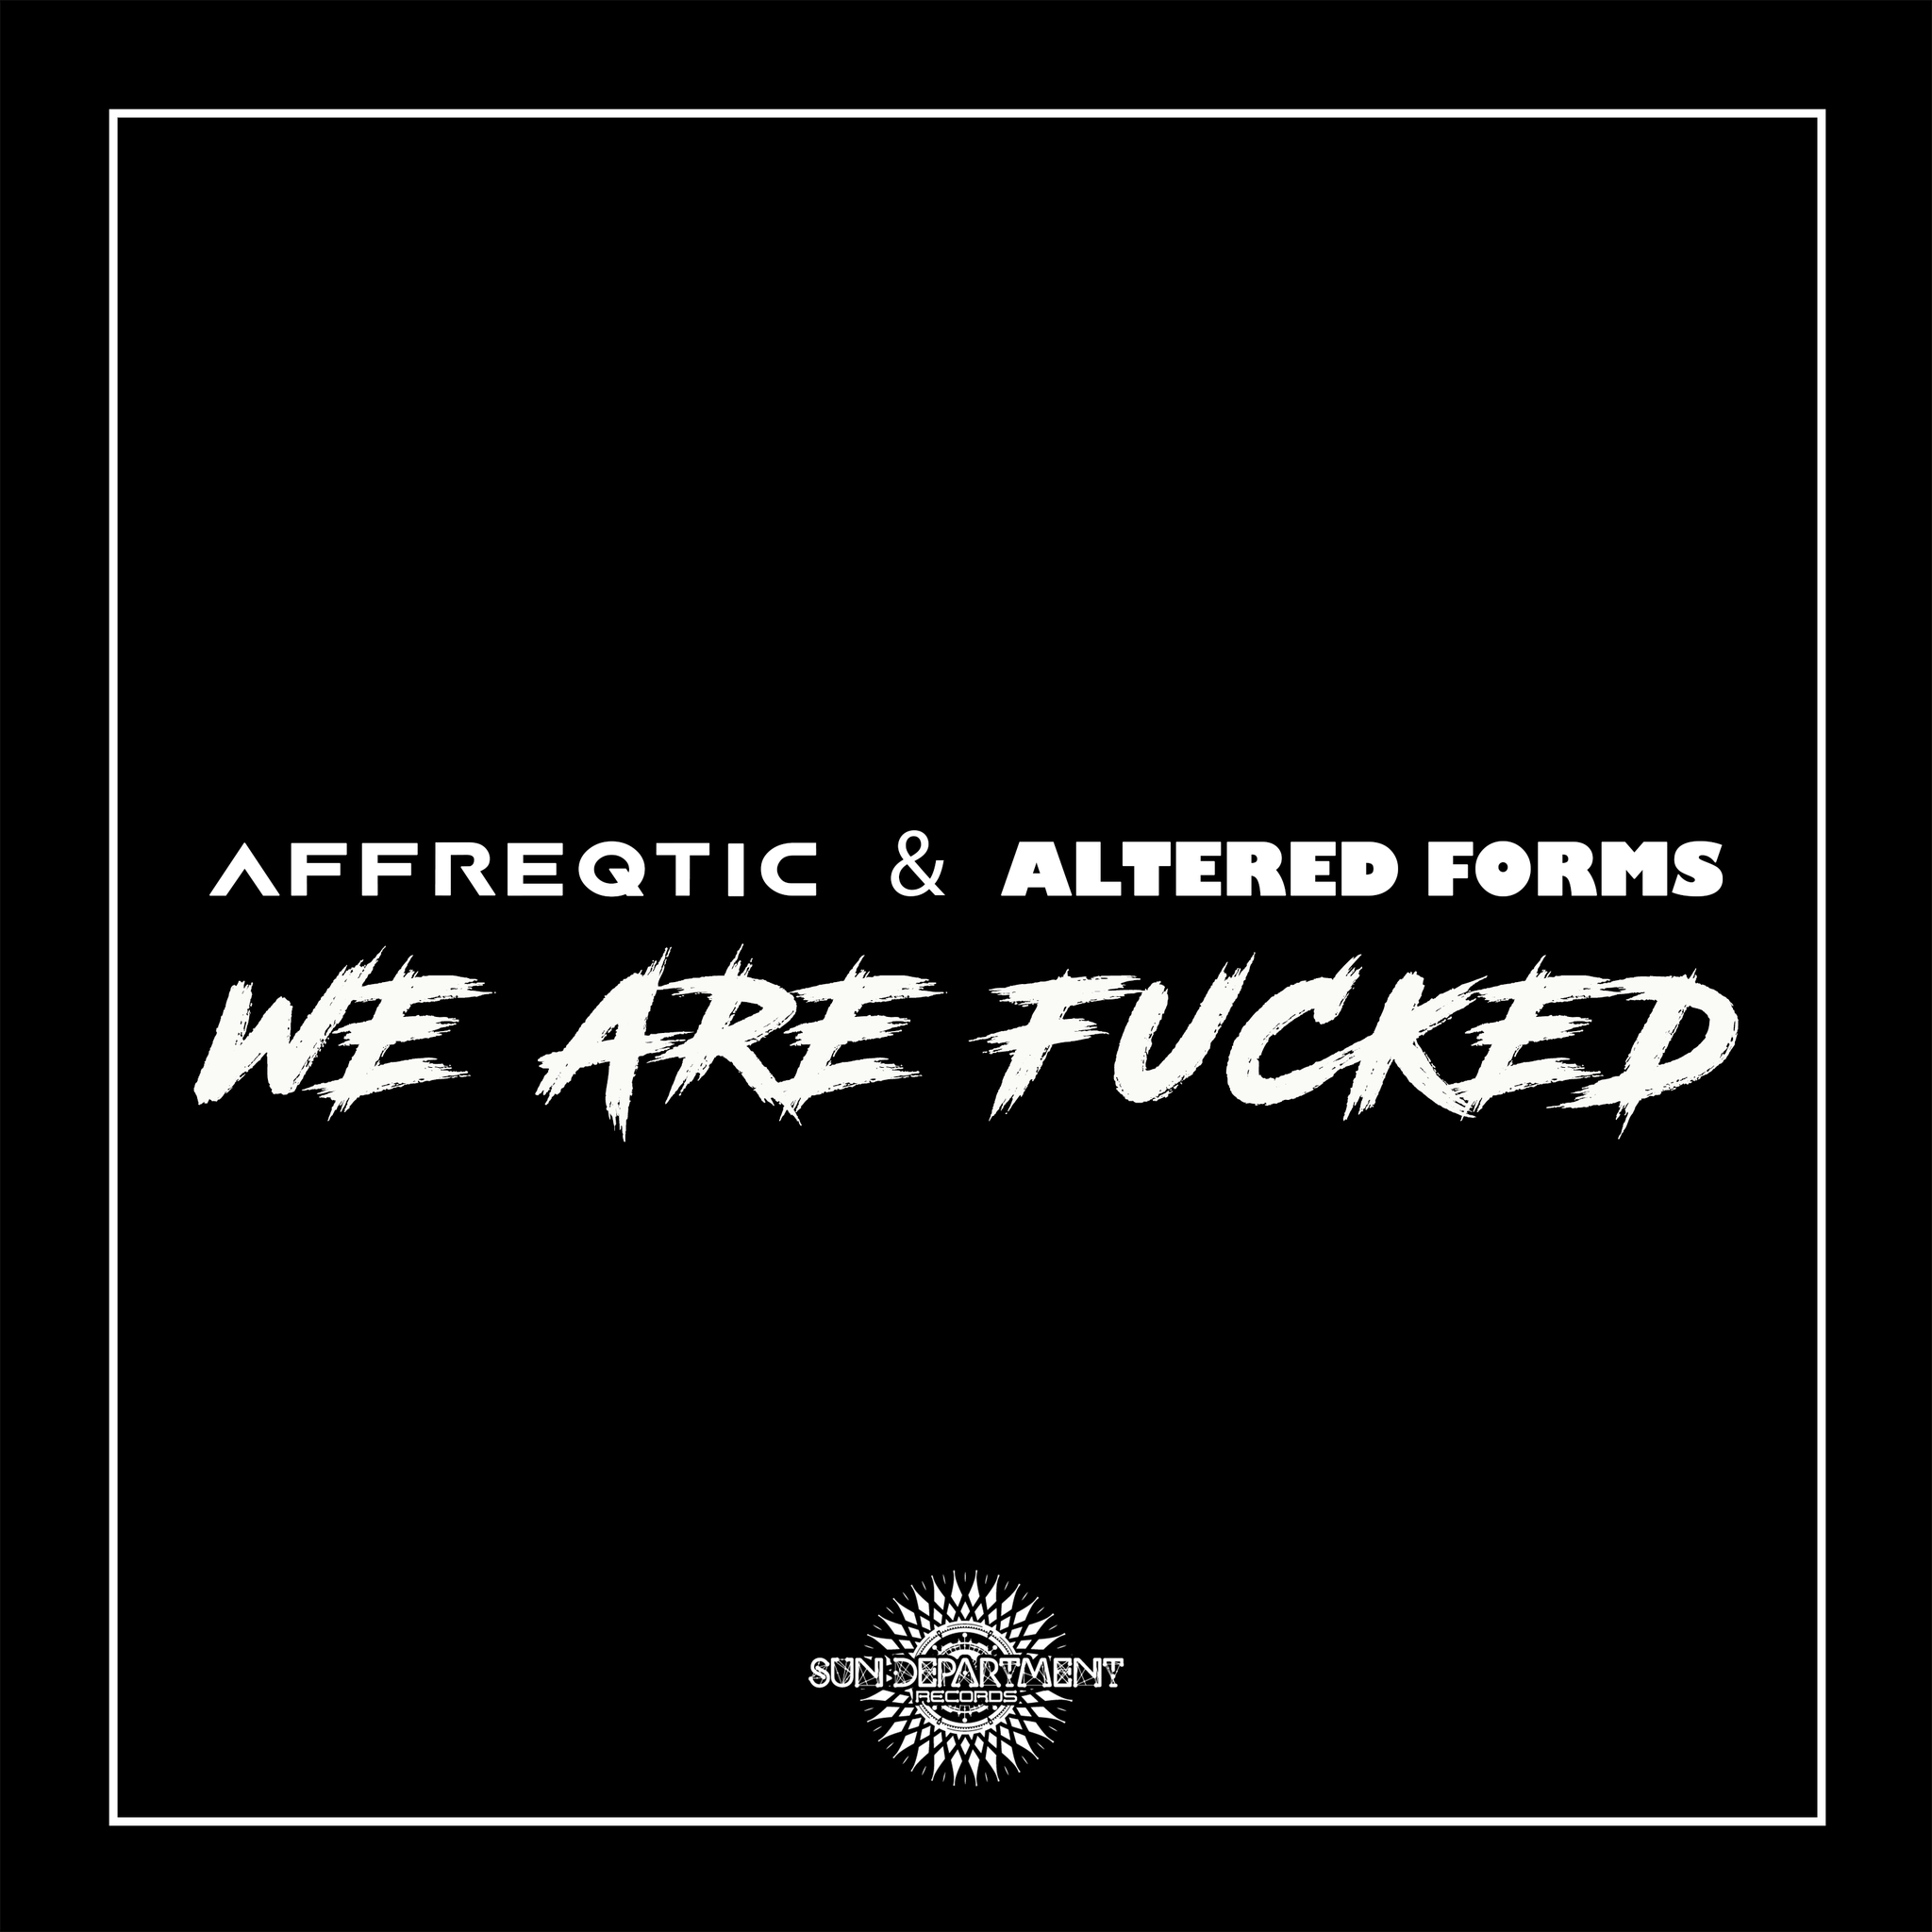 Affreqtic & Altered Forms - We are Fucked